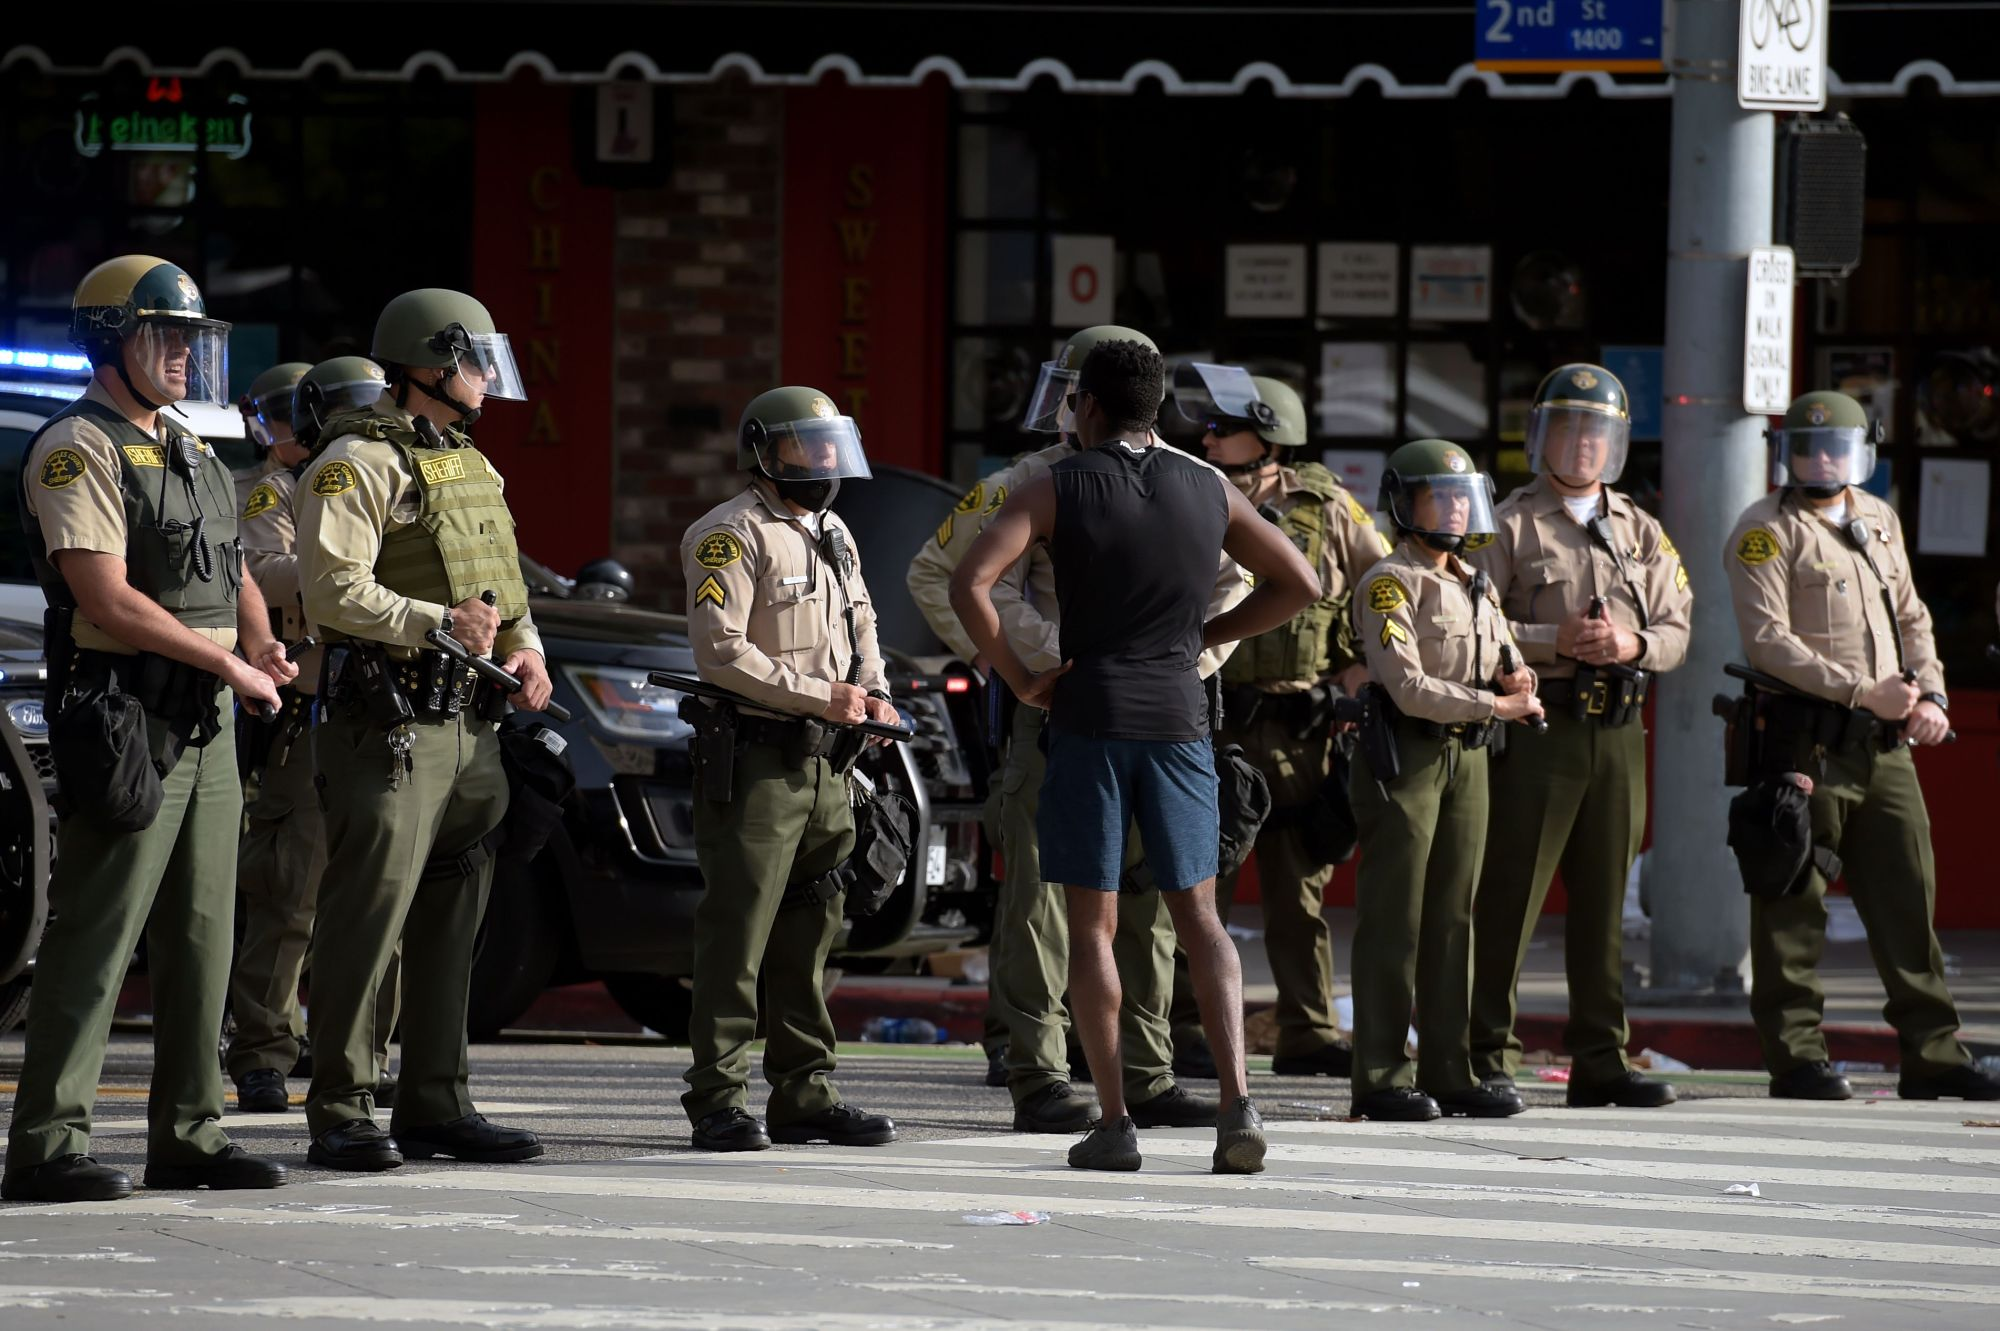 A protester confronts a row of Los Angeles County sheriff's deputies during a demonstration over the death of George Floyd in Santa Monica on May 31, 2020.(AGUSTIN PAULLIER/AFP via Getty Images)